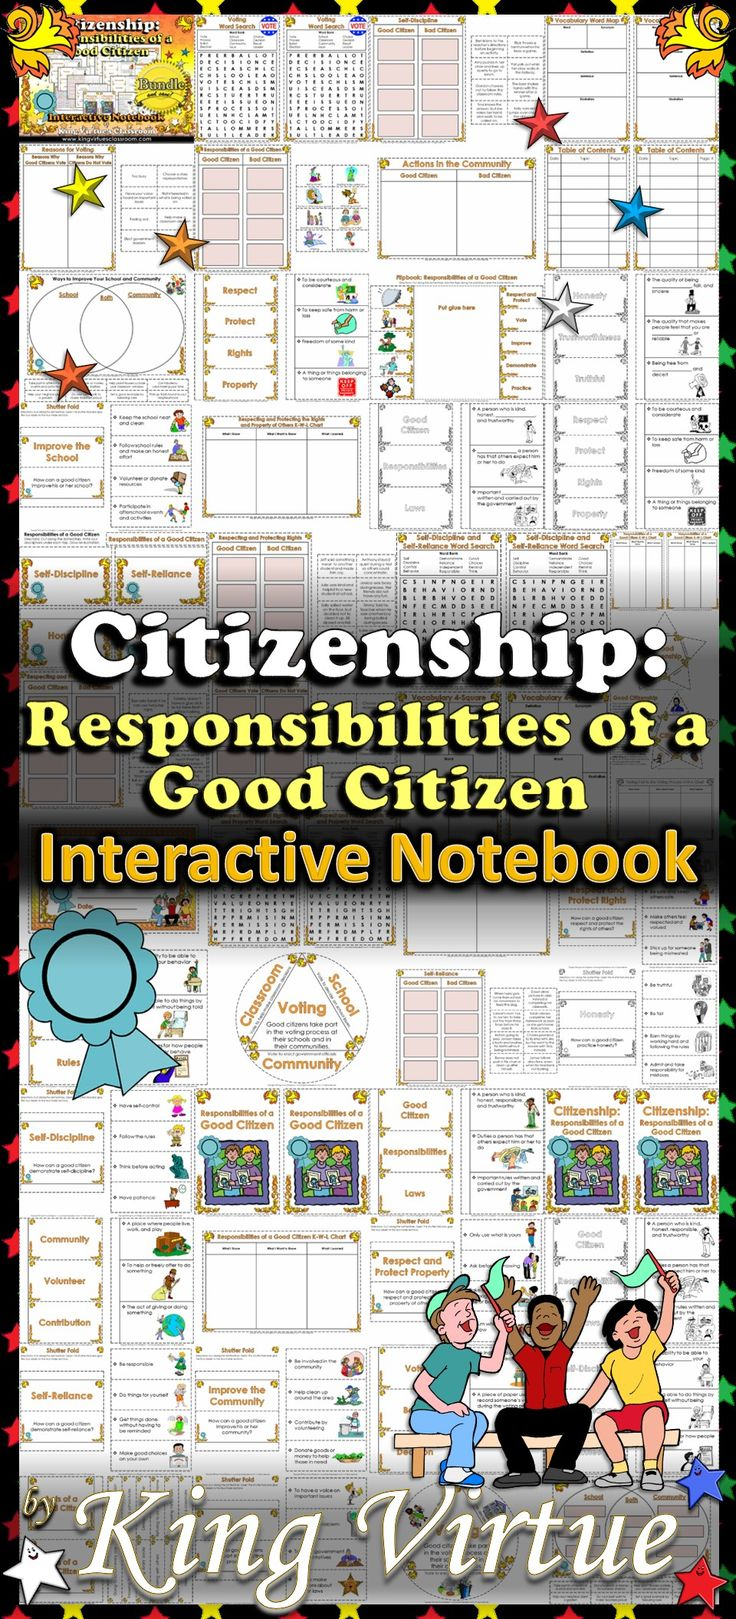 Responsibilities of a Good Citizen Interactive Notebook BUNDLE - Citizenship - King Virtue's Classroom  This Responsibilities of a Good Citizen Interactive Notebook covers the following:  * Respecting and protecting the rights and property of others * Taking part in the voting process when making classroom decisions * Describing actions that can improve the school and community * Demonstrating self-discipline and self-reliance * Practicing honesty and trustworthiness